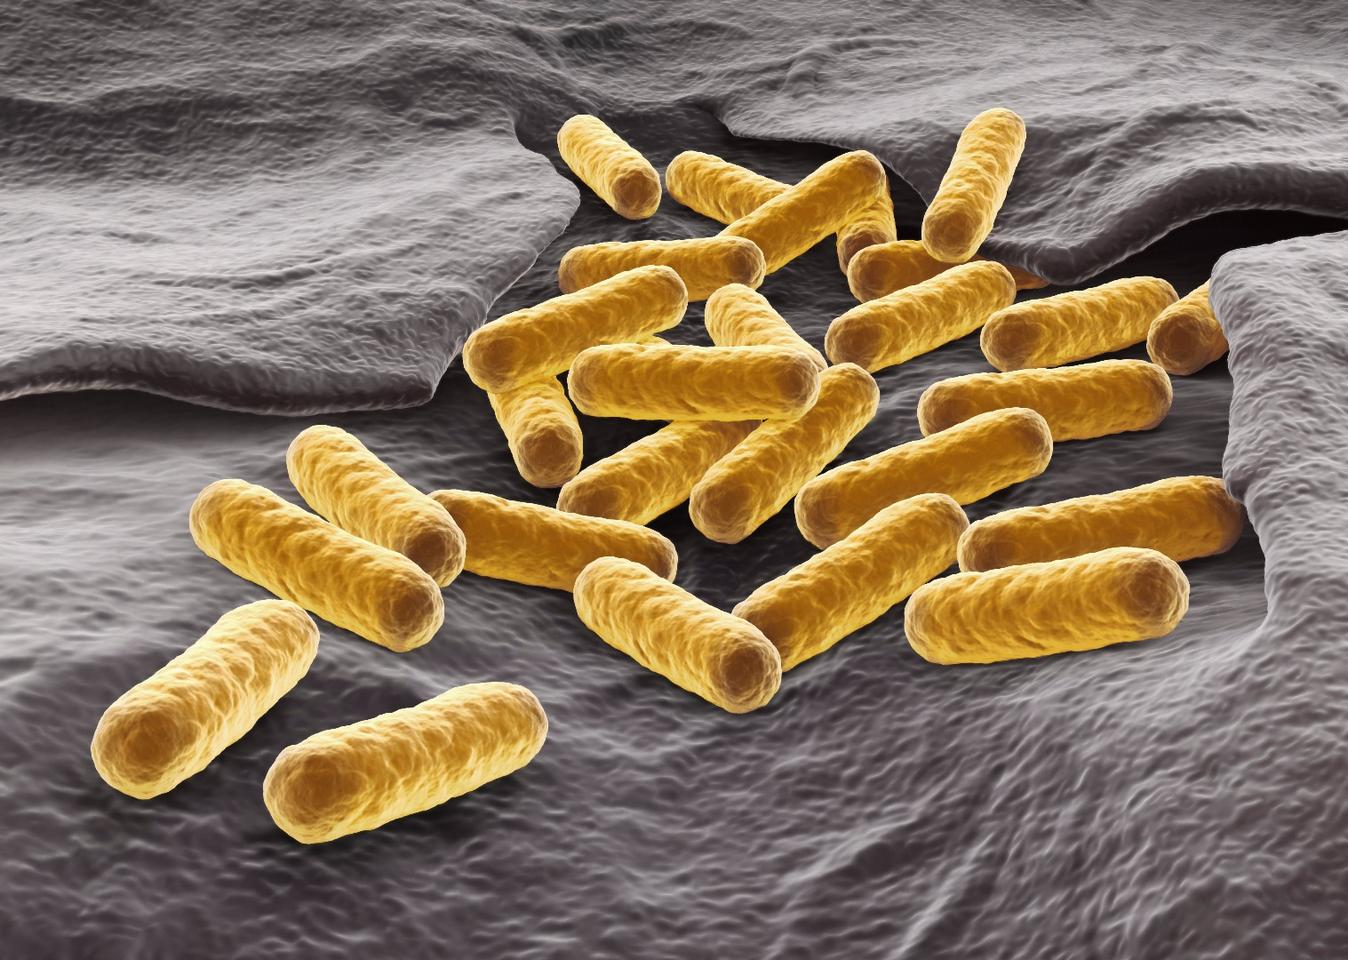 Early tests using the nanoparticles to tackle antibiotic-resistant bacteria, such as E. Coli (pictured), were successful, killing off 92 percent of the target cells